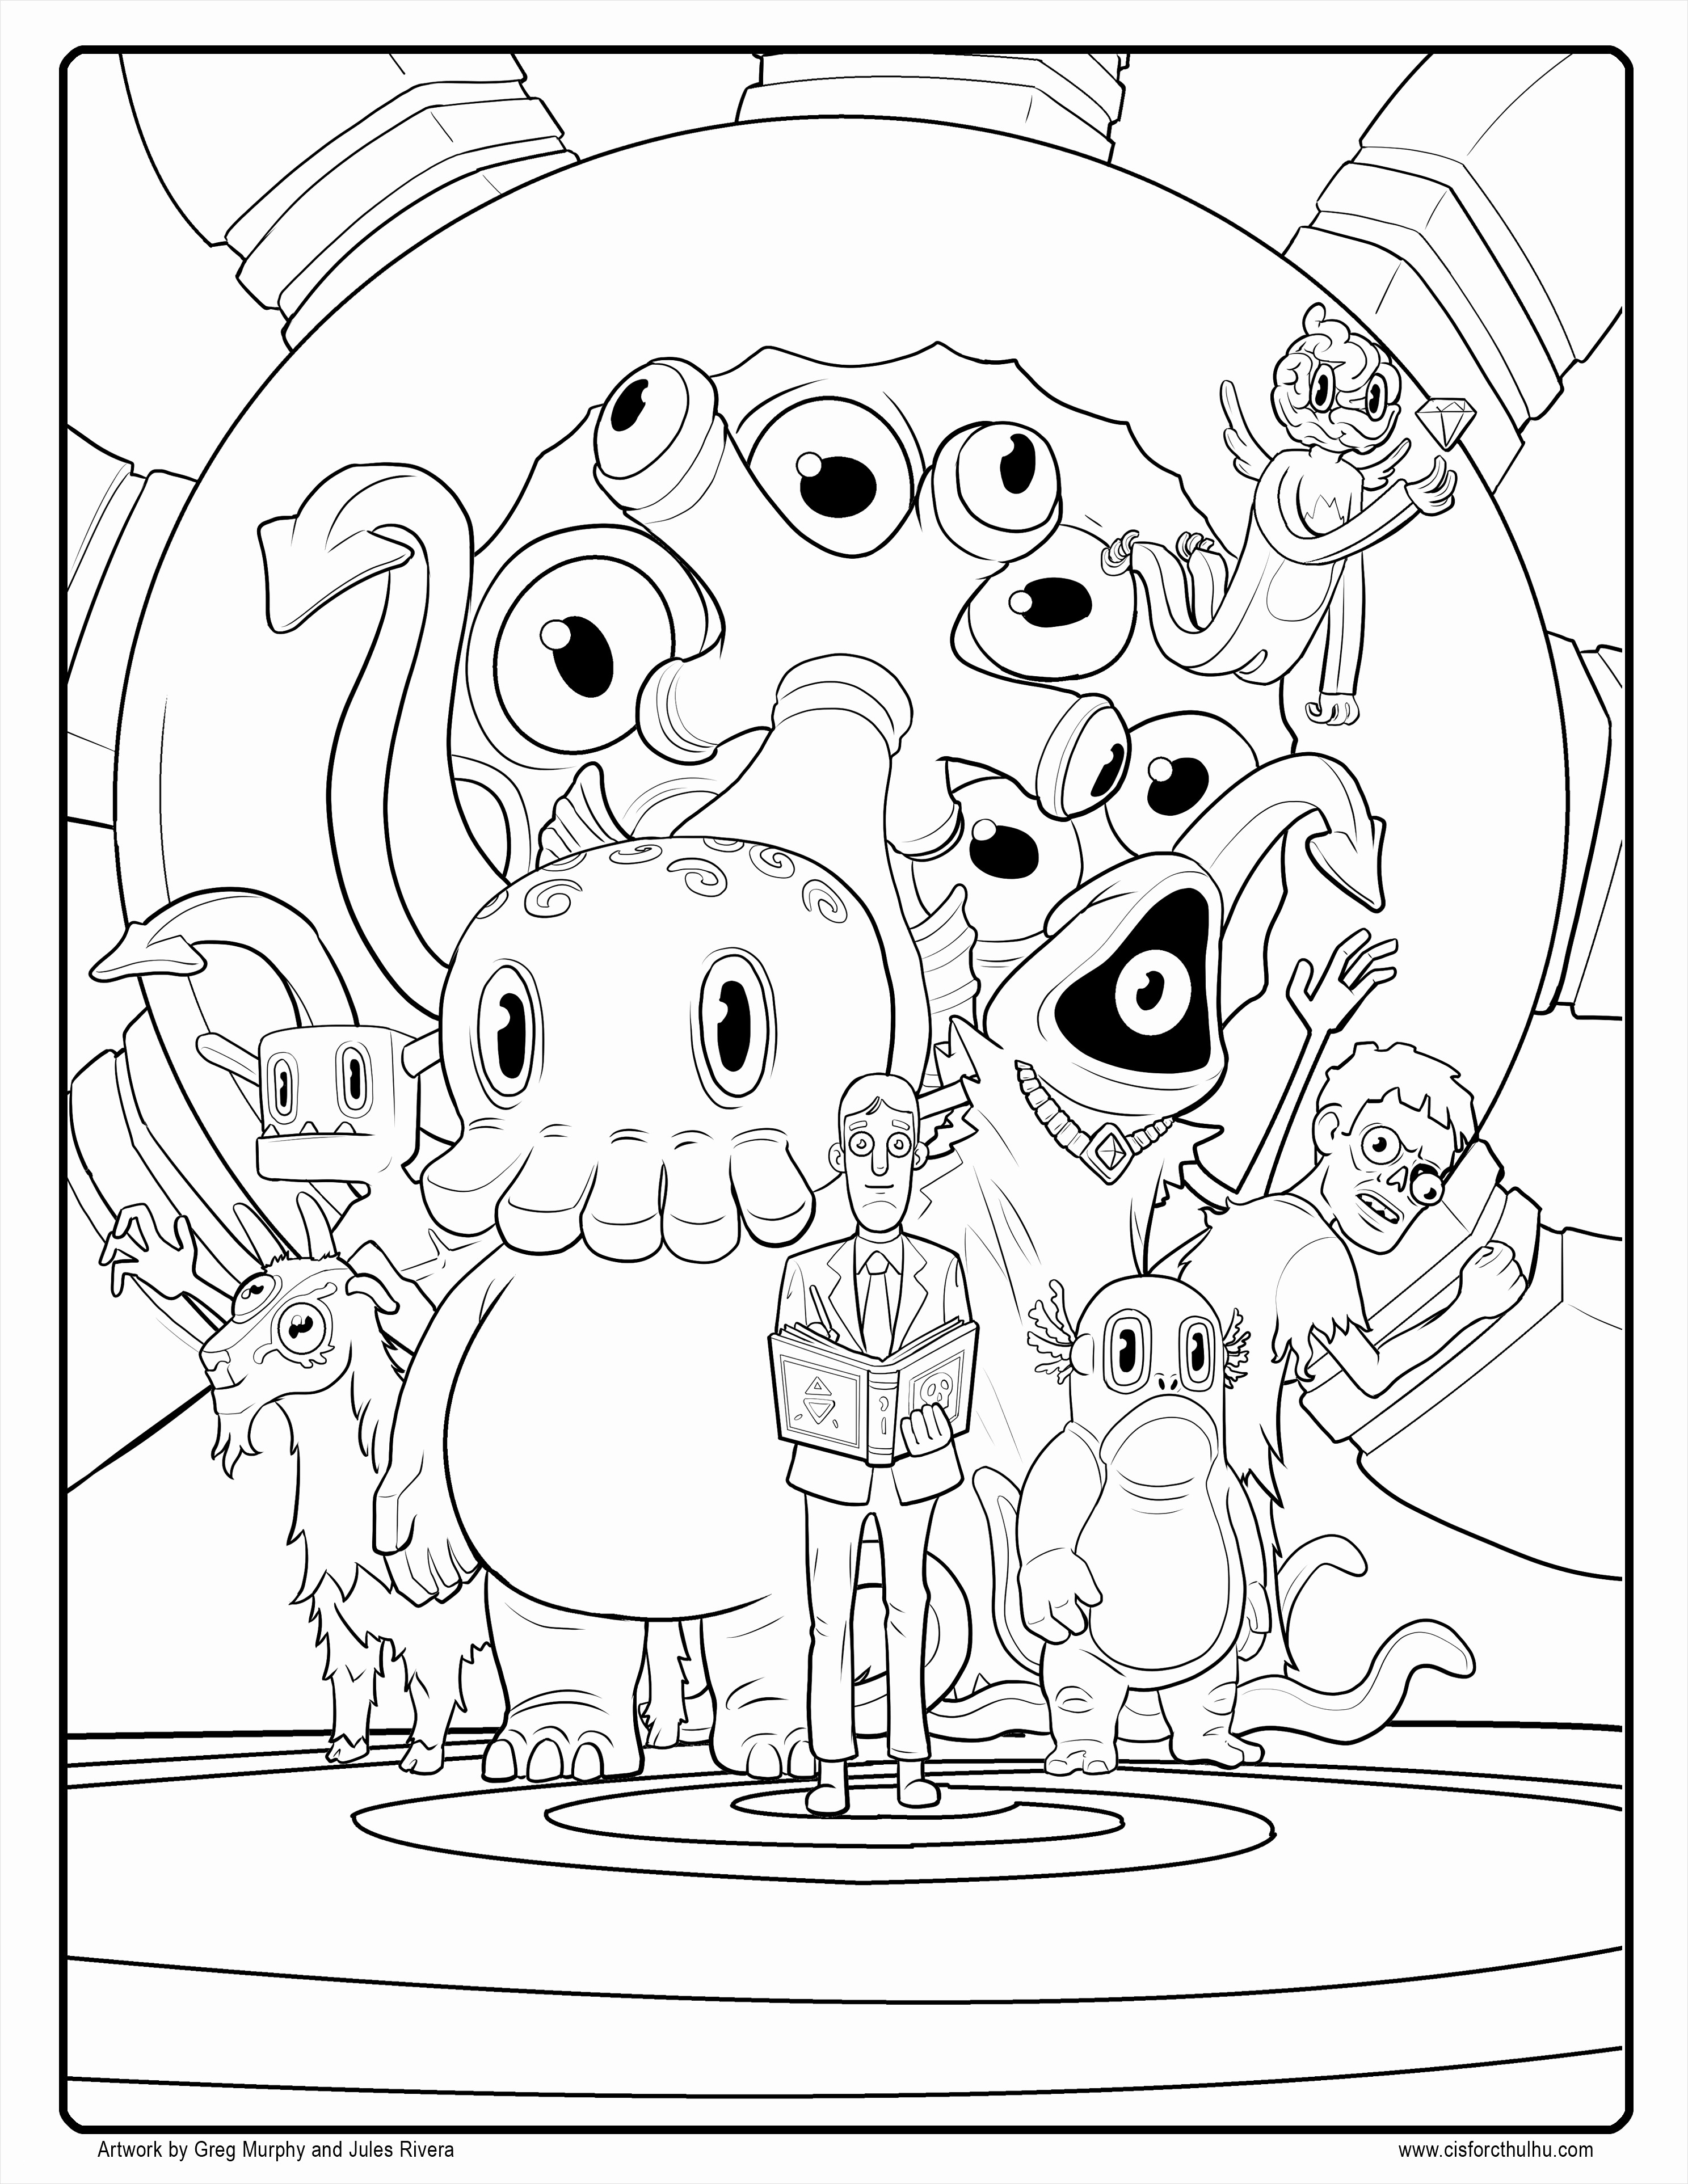 Food Chain Coloring Pages  Gallery 2k - Free For Children